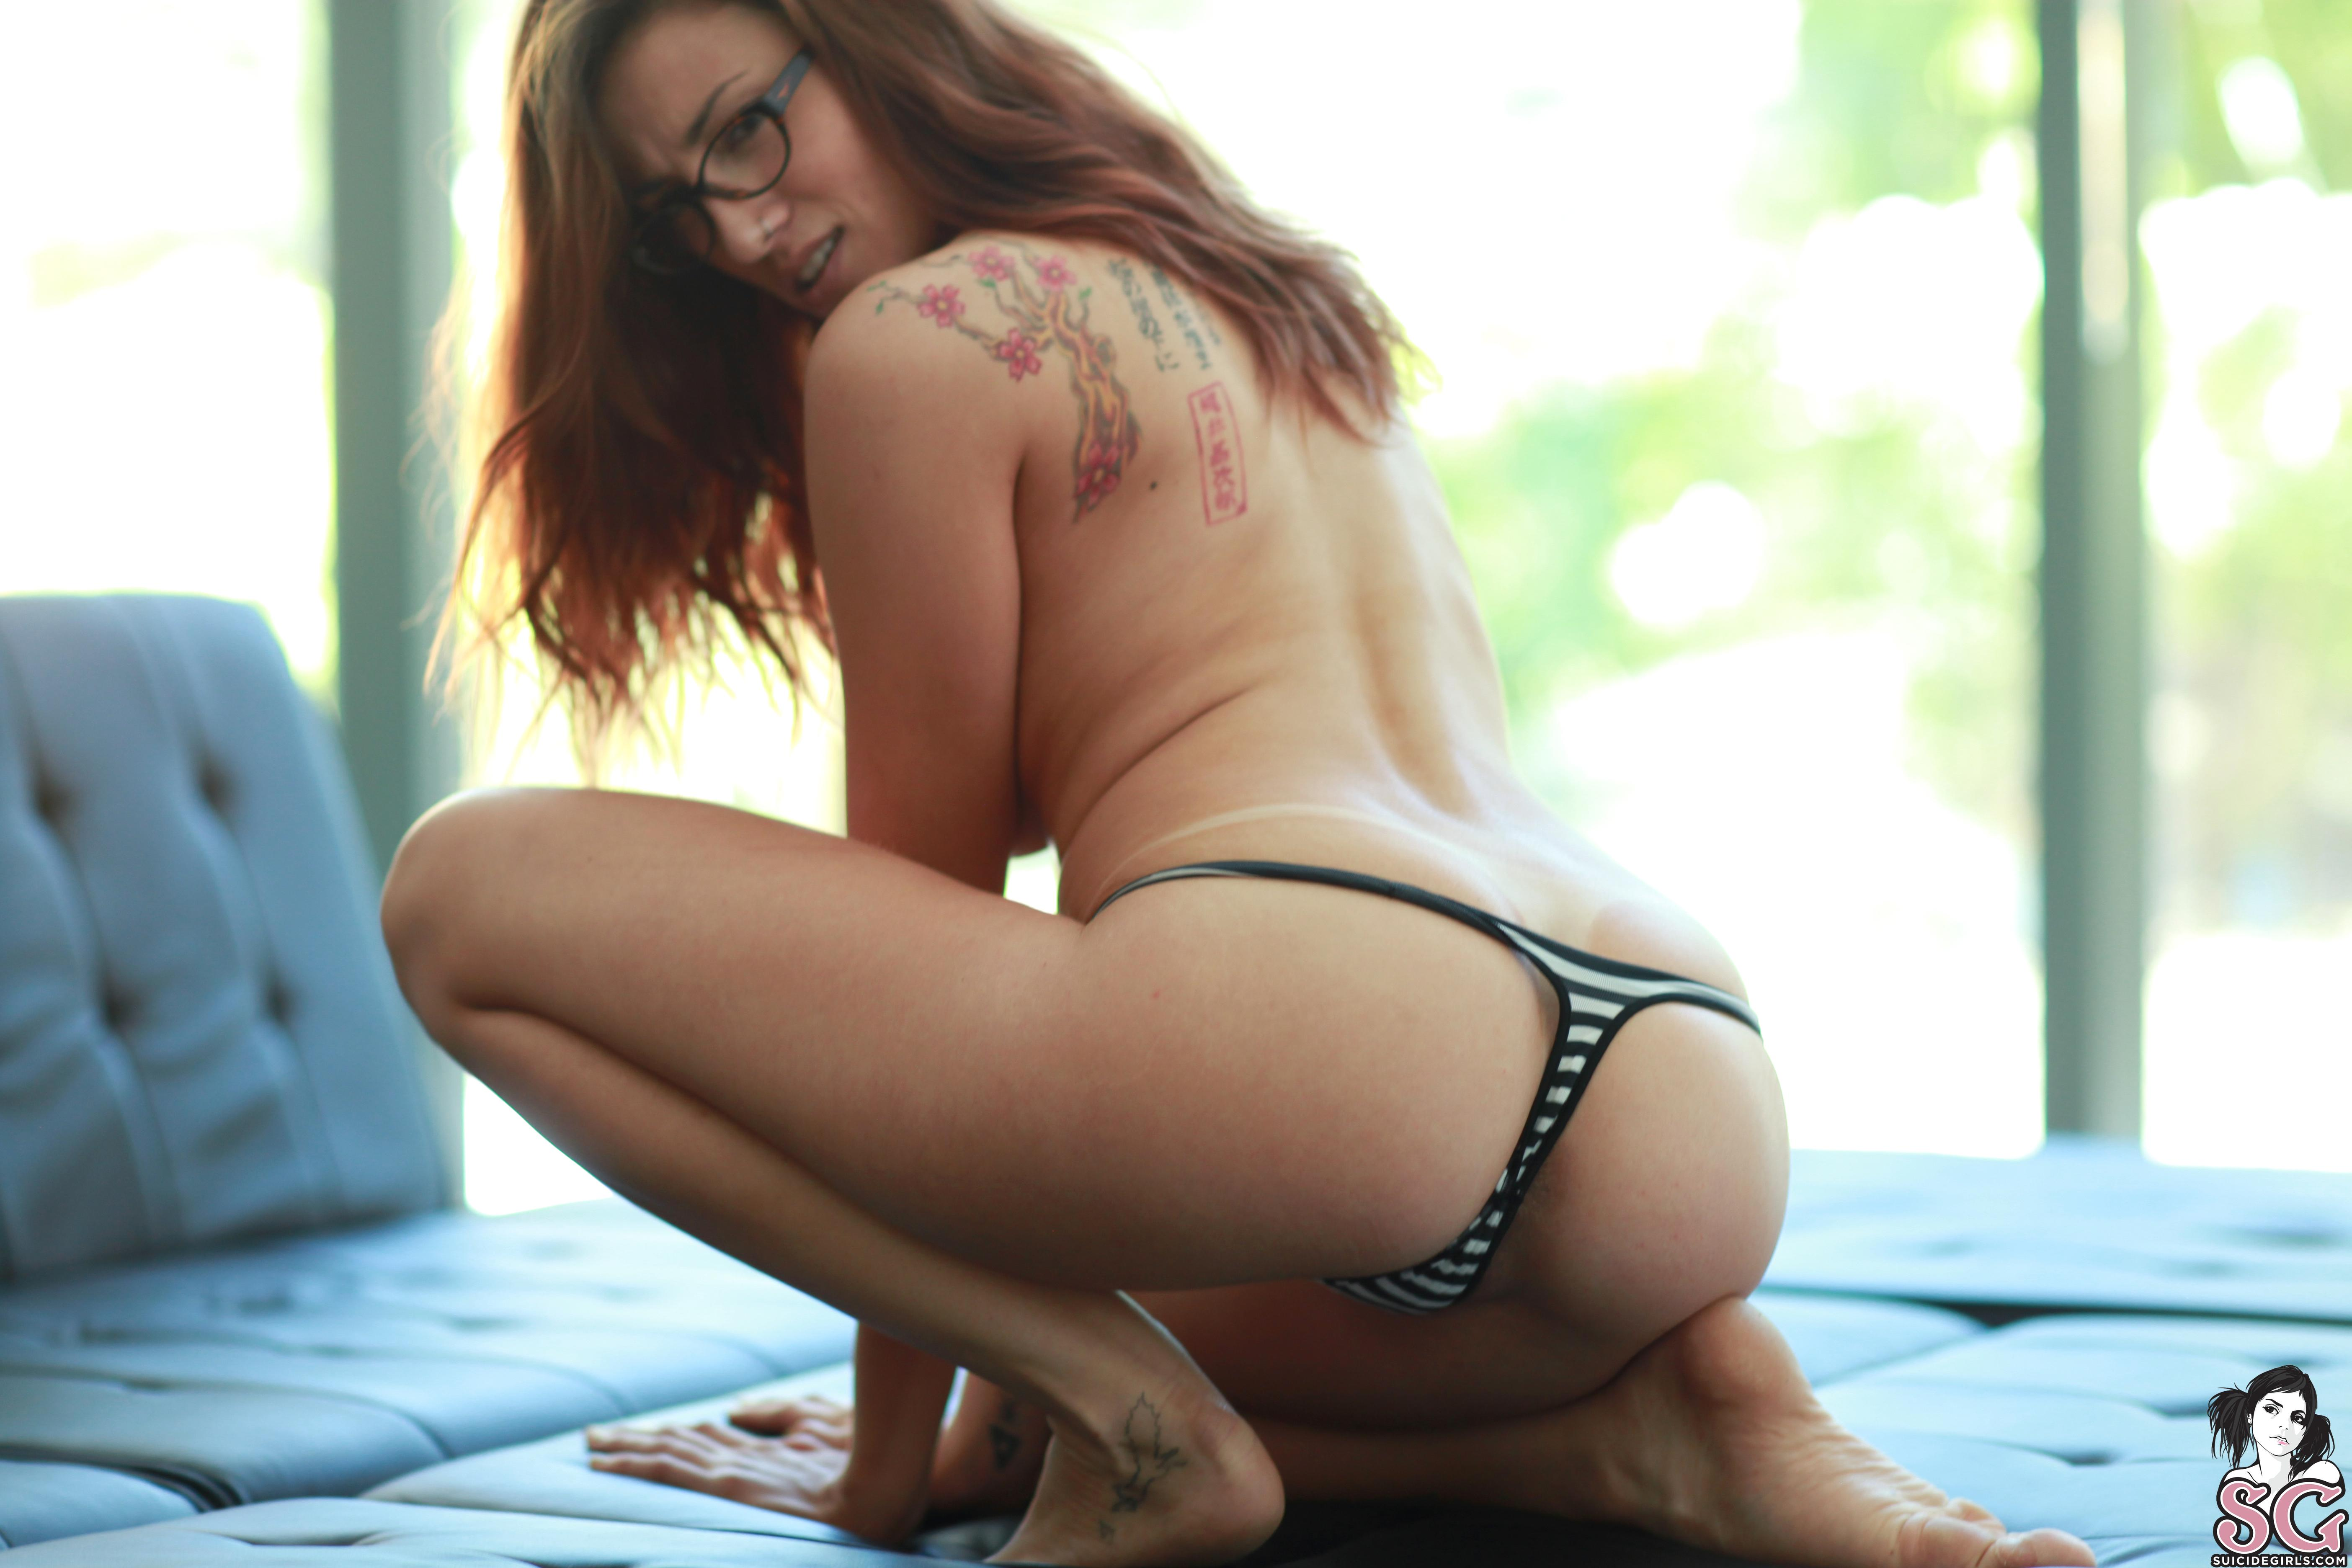 Naked Images Humilation strapon pigtails fisting